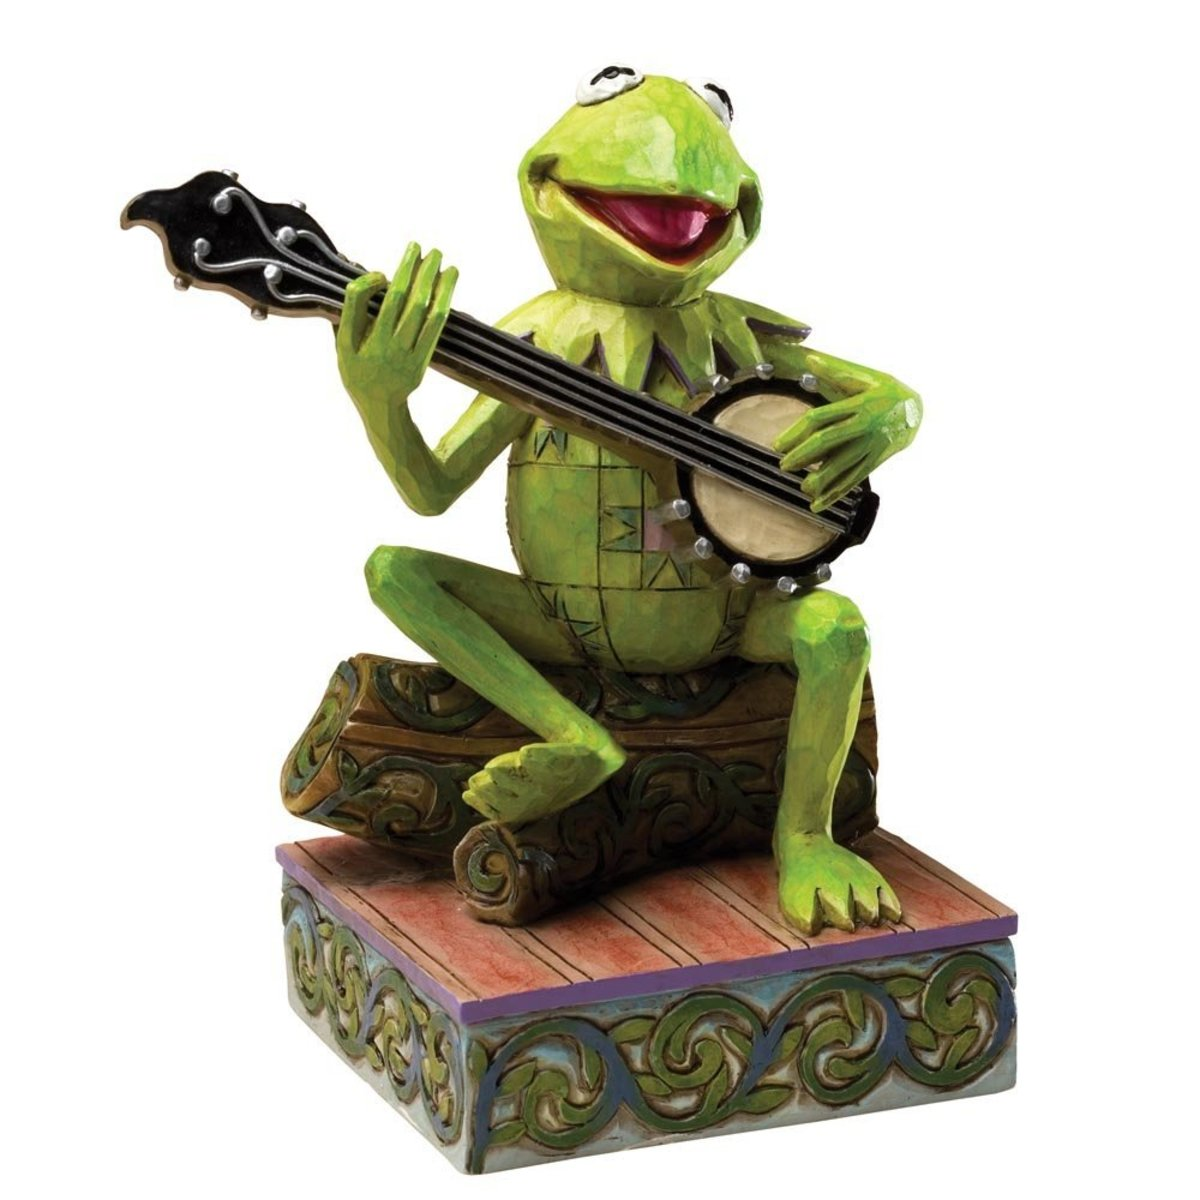 Jim Shore's Collectible The Muppets and Kermit The Frog Figurines